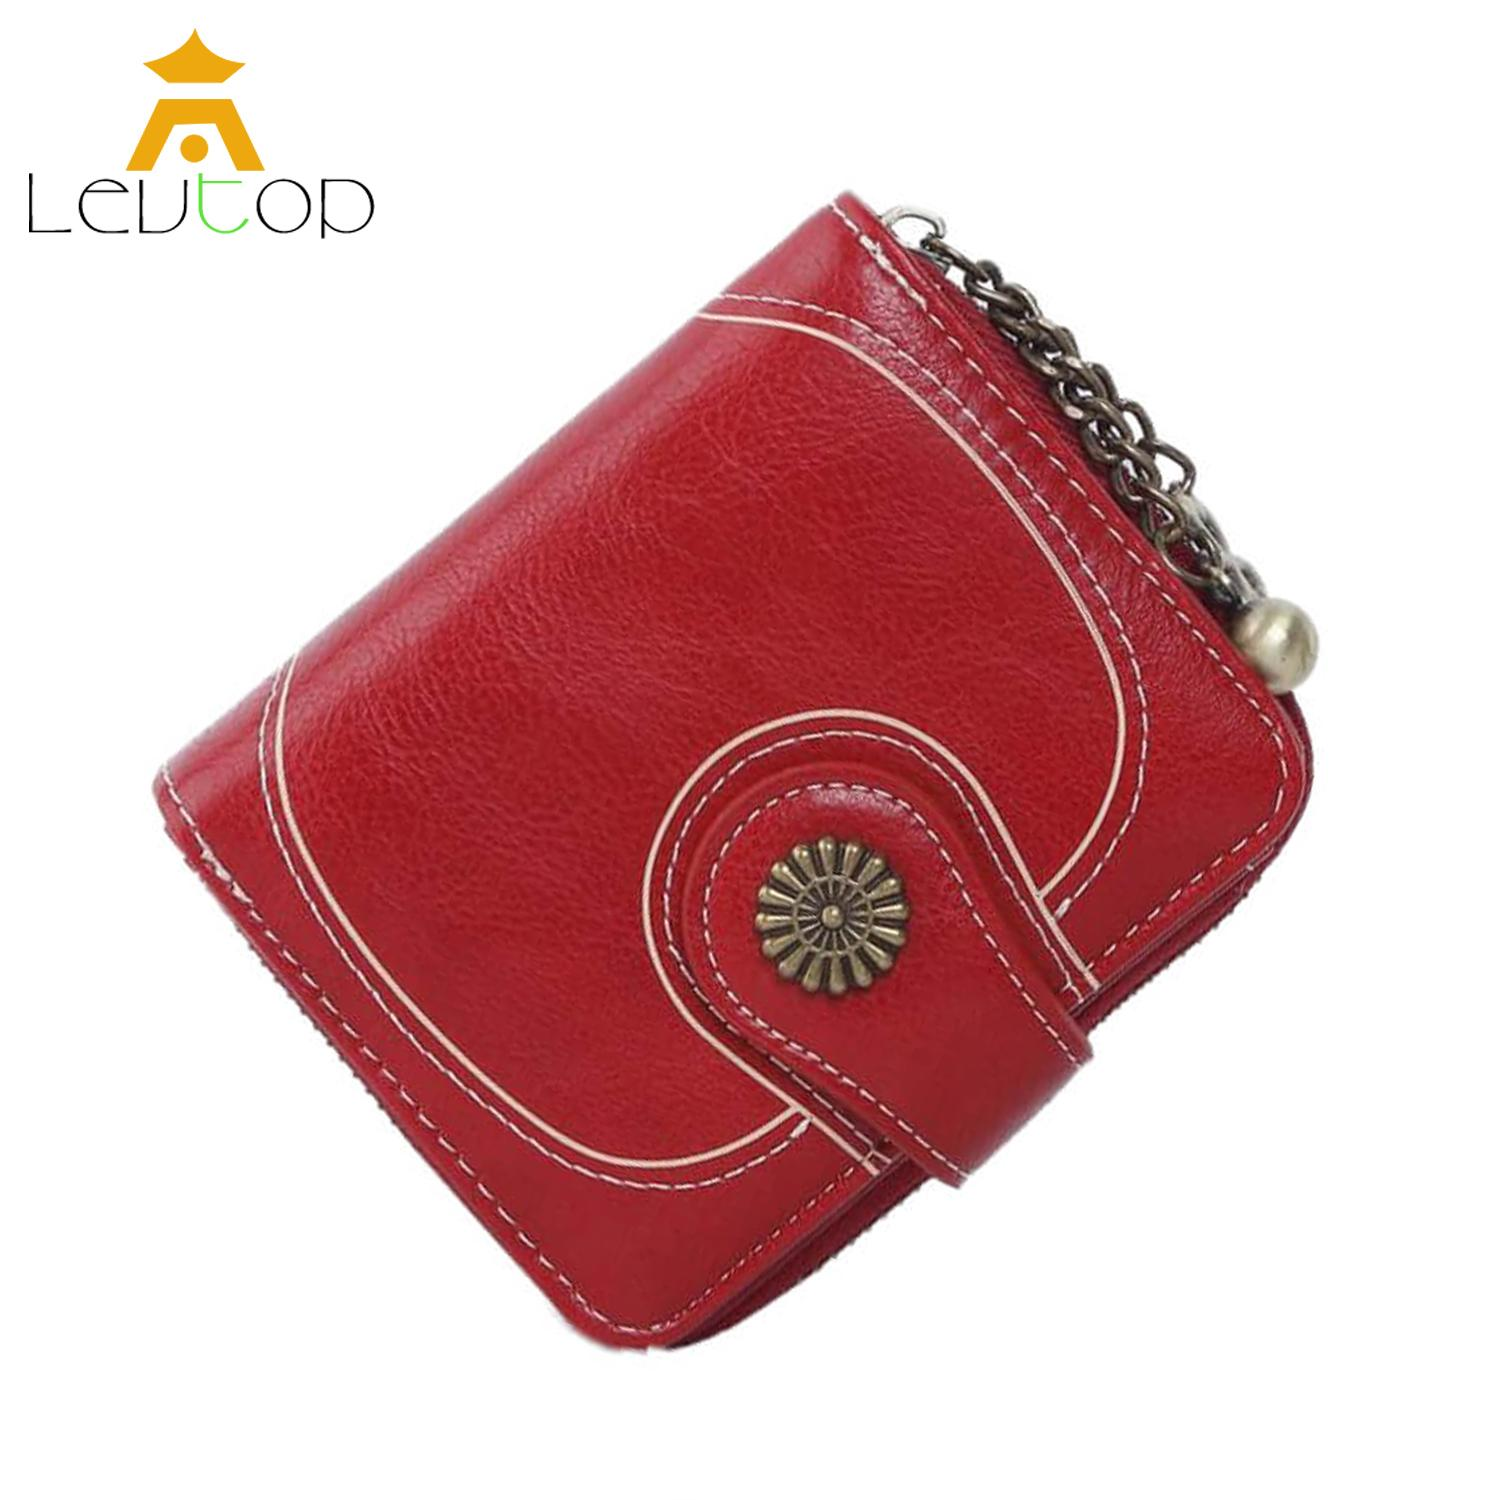 LEVTOP Women Small Wallet Purse Card Holder PU Leather Sling Mini ladies wallet Coin Pocket Zipper Clutch